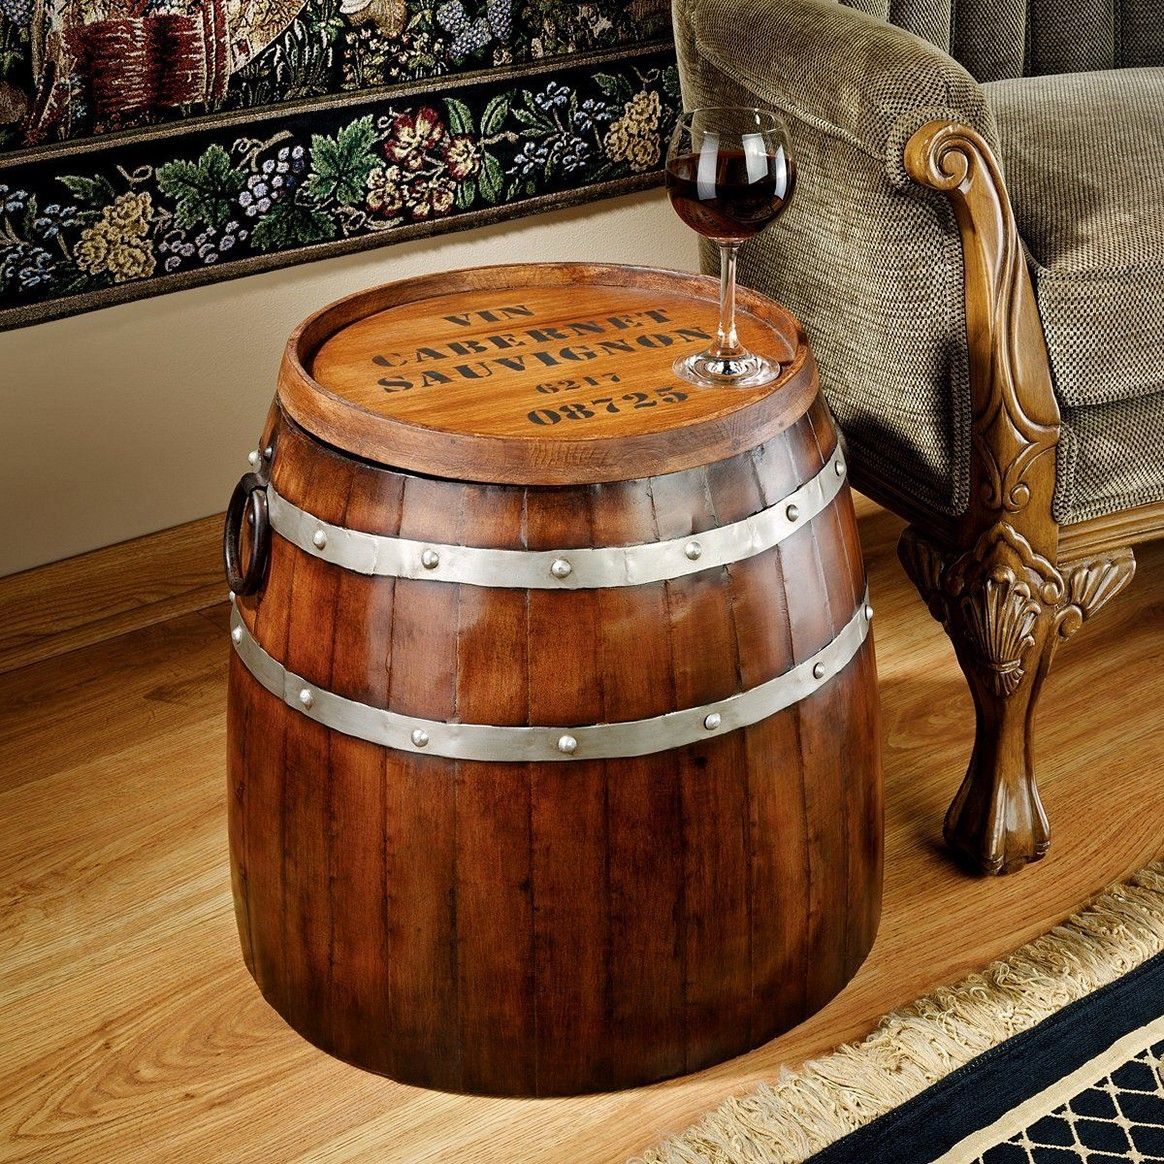 interior design toscano french wine barrel side table metalware construction wood metal vintage end accent rustic home decor sides and top replicate real oak aged iron west elm